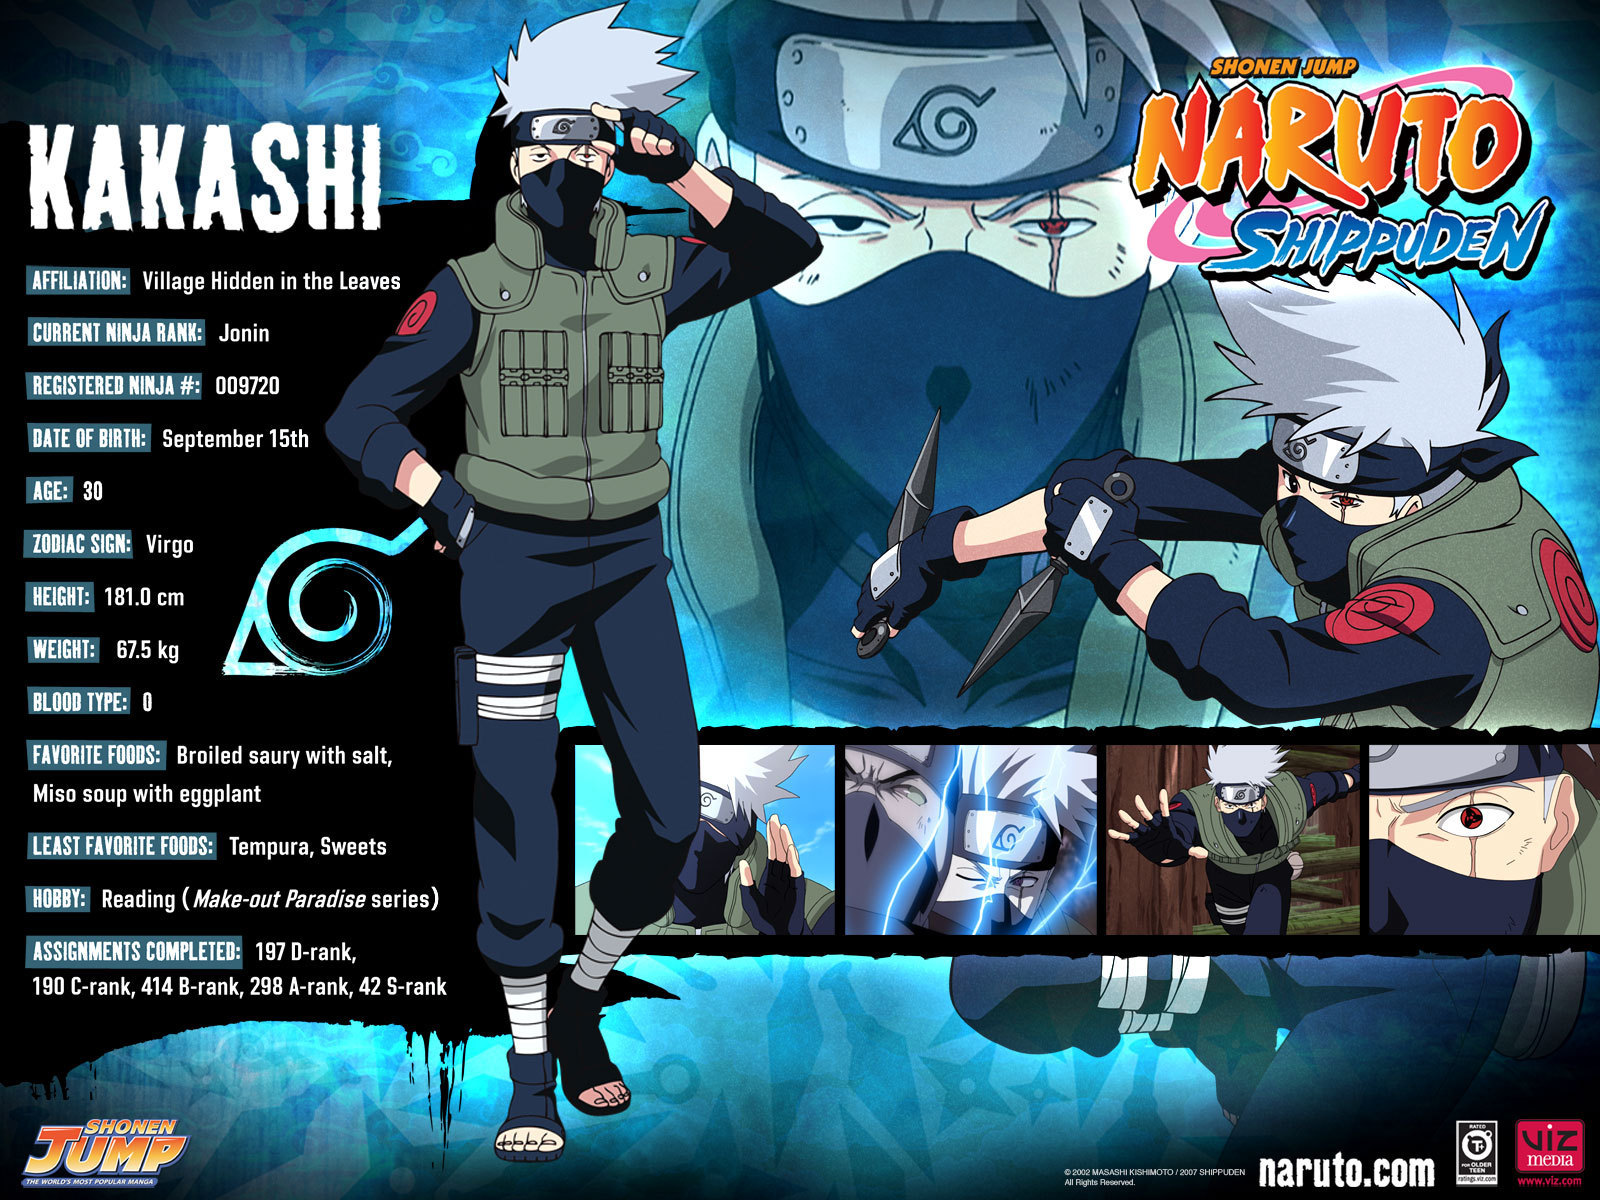 Naruto Shippuden Wallpaper Android with High Resolution Wallpaper 1600x1200